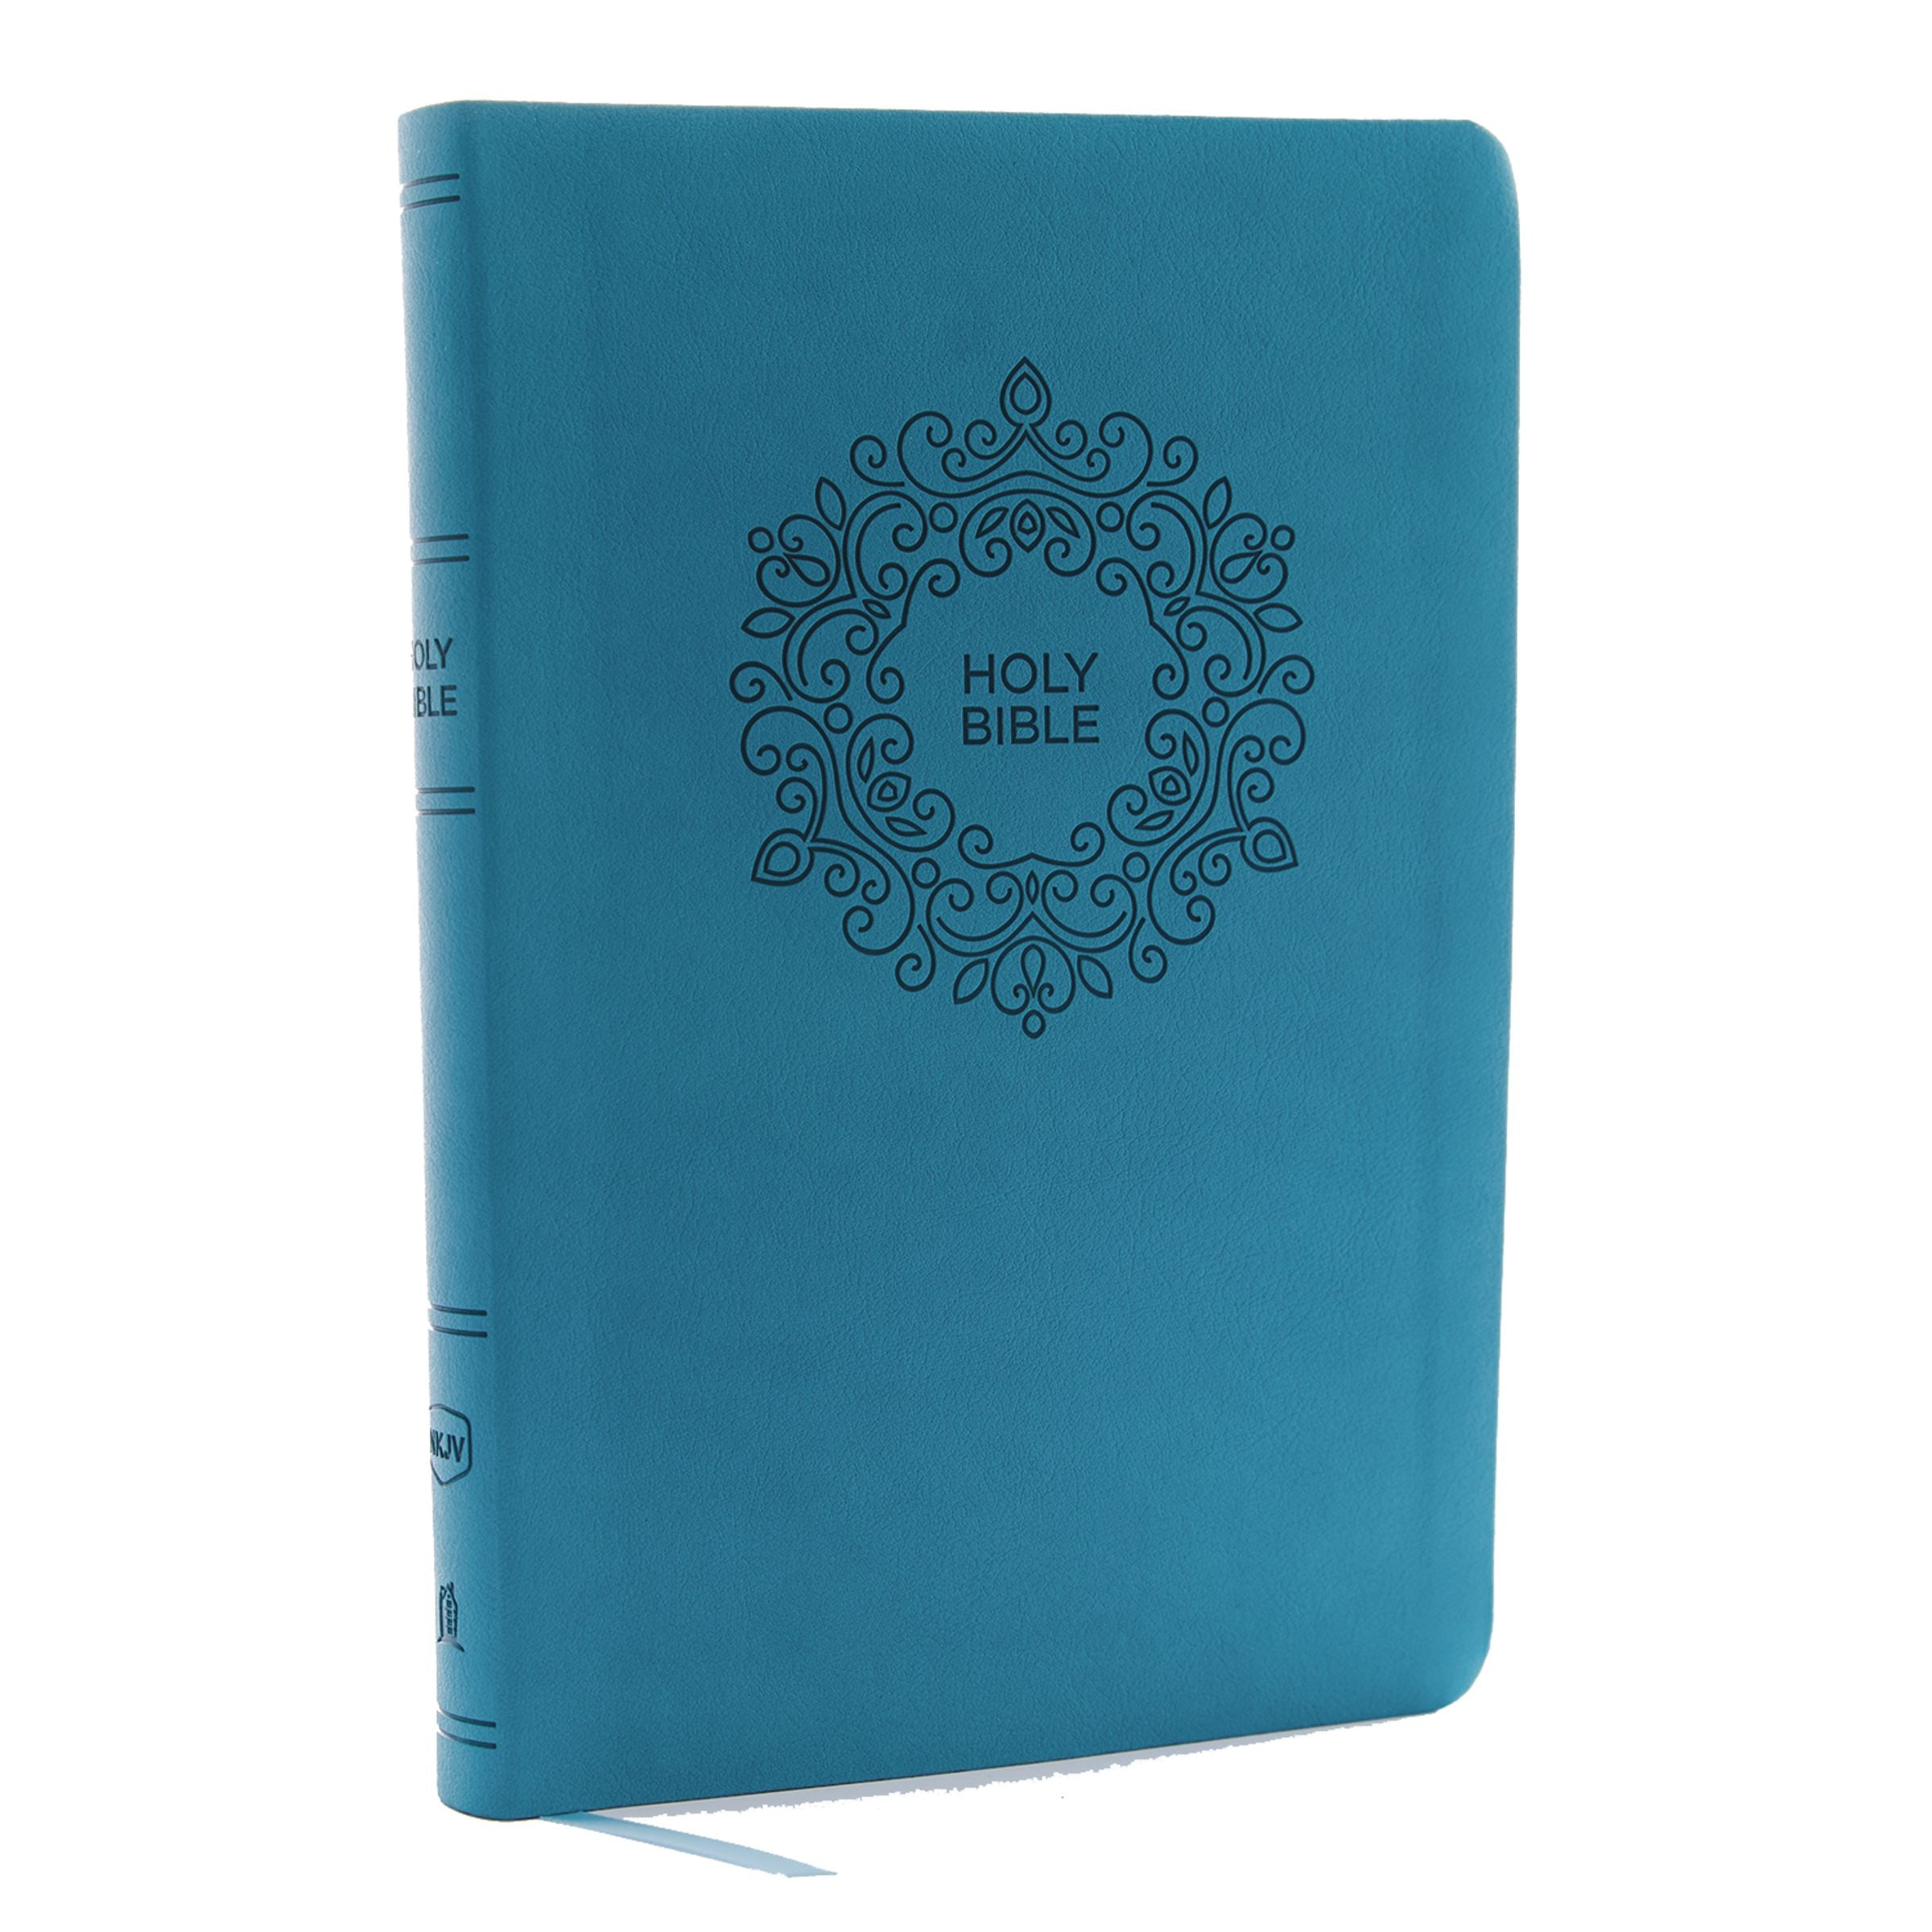 Nkjv  Value Thinline Bible  Large Print  Leathersoft  Blue